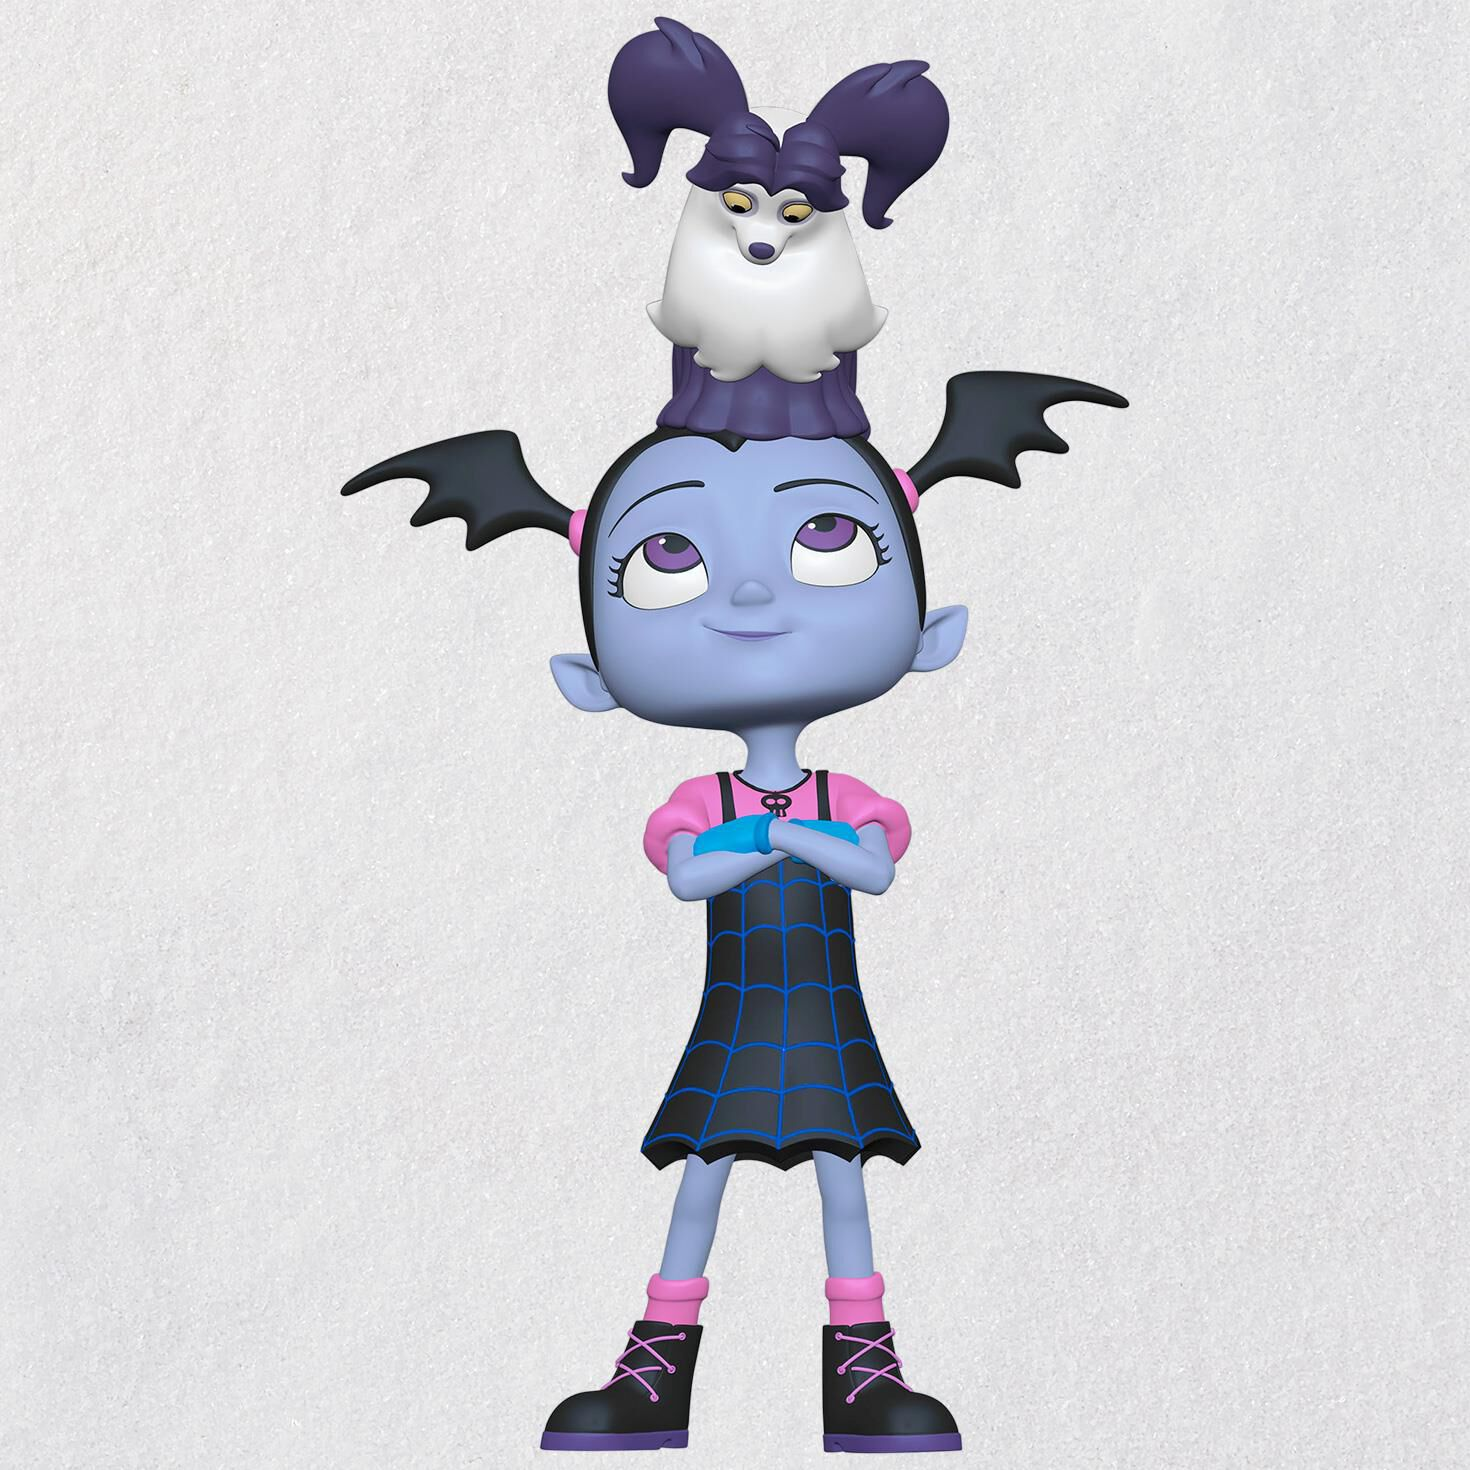 Disney Junior Vampirina Ornament Keepsake Ornaments Hallmark